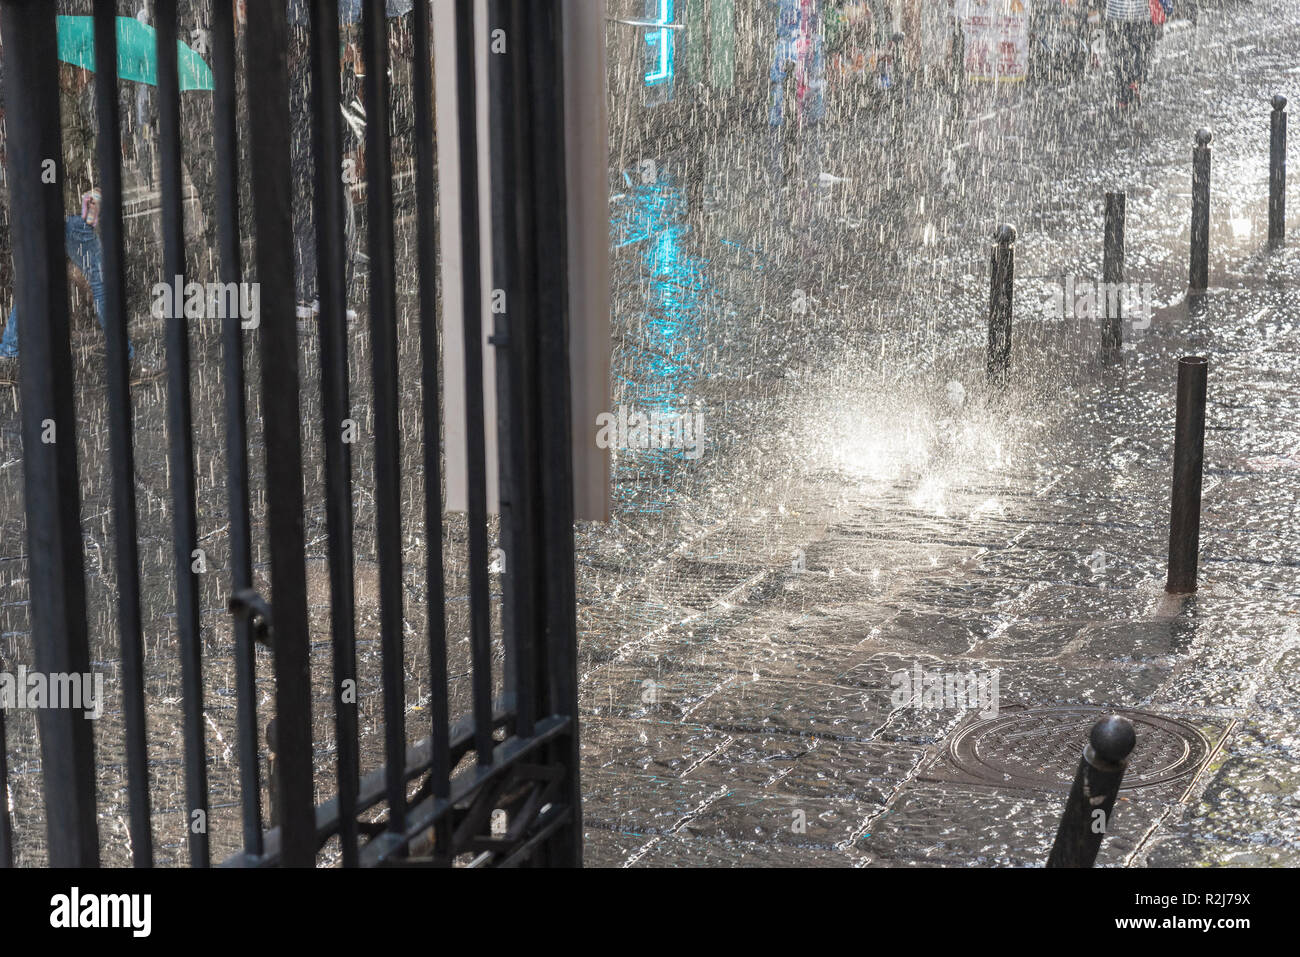 Rain, blurring and large drops of strong water flow. Blurred rain background. - Stock Image